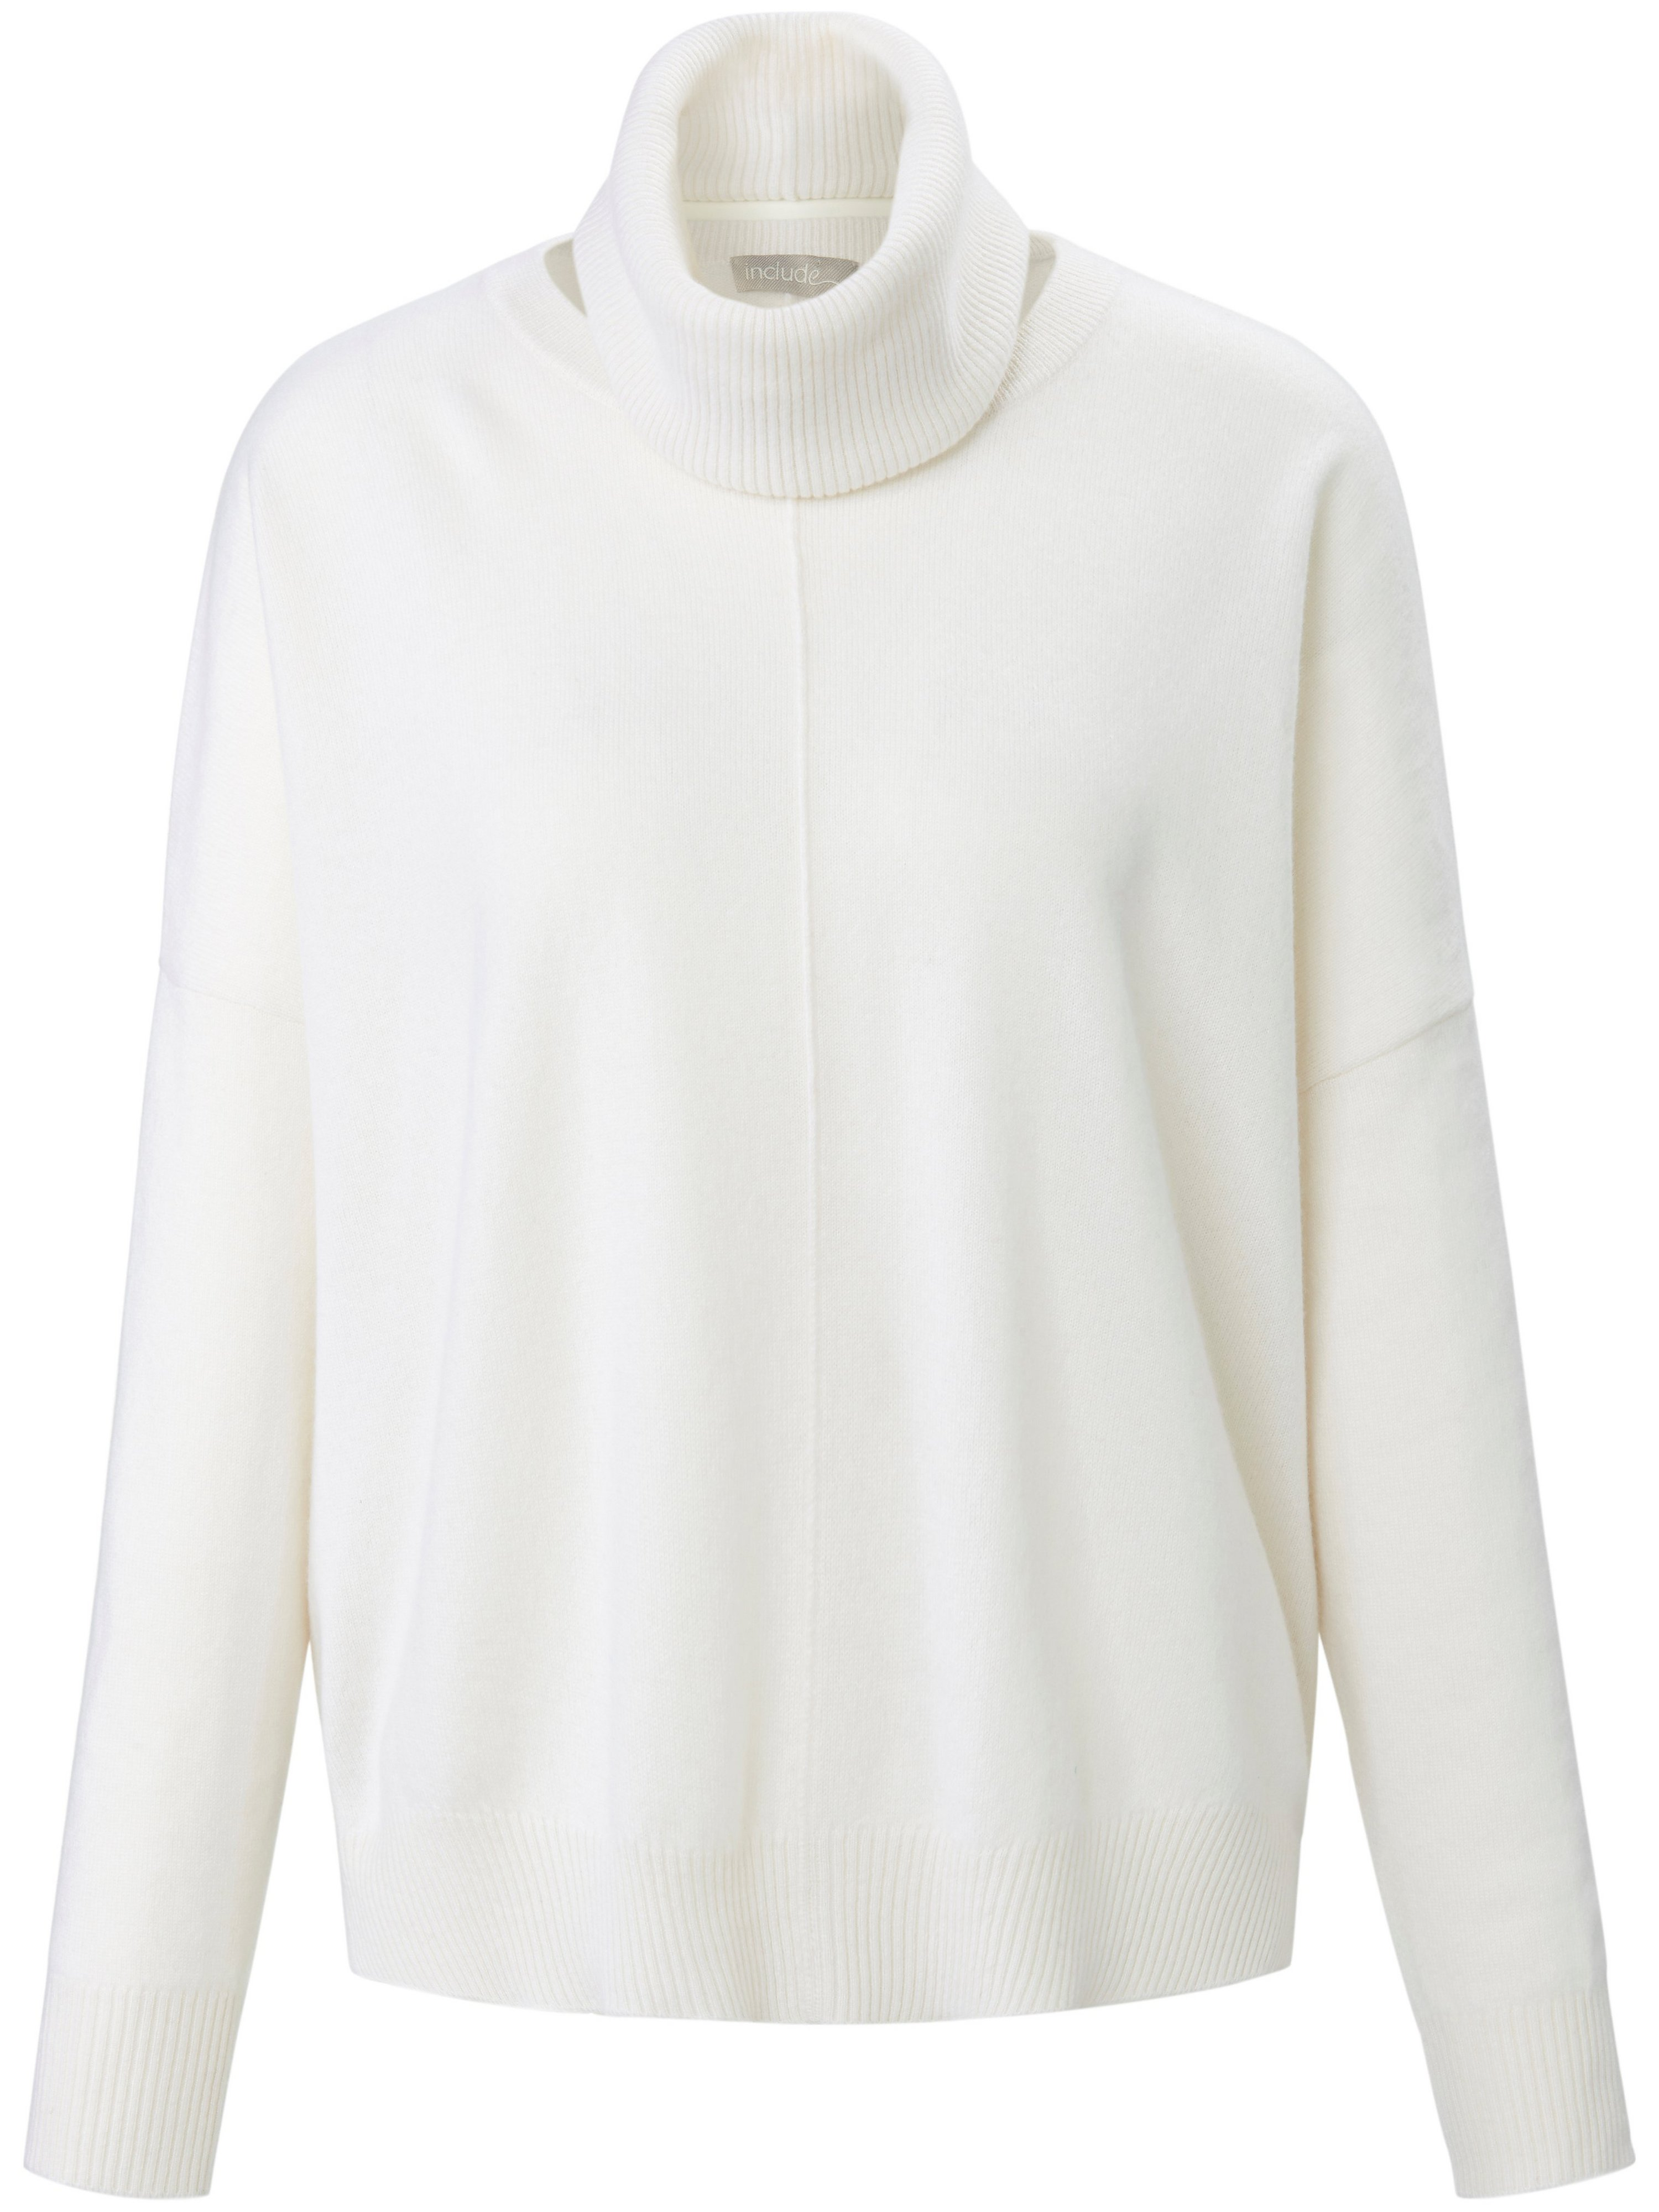 Le pull 100% cachemire  include blanc taille 38